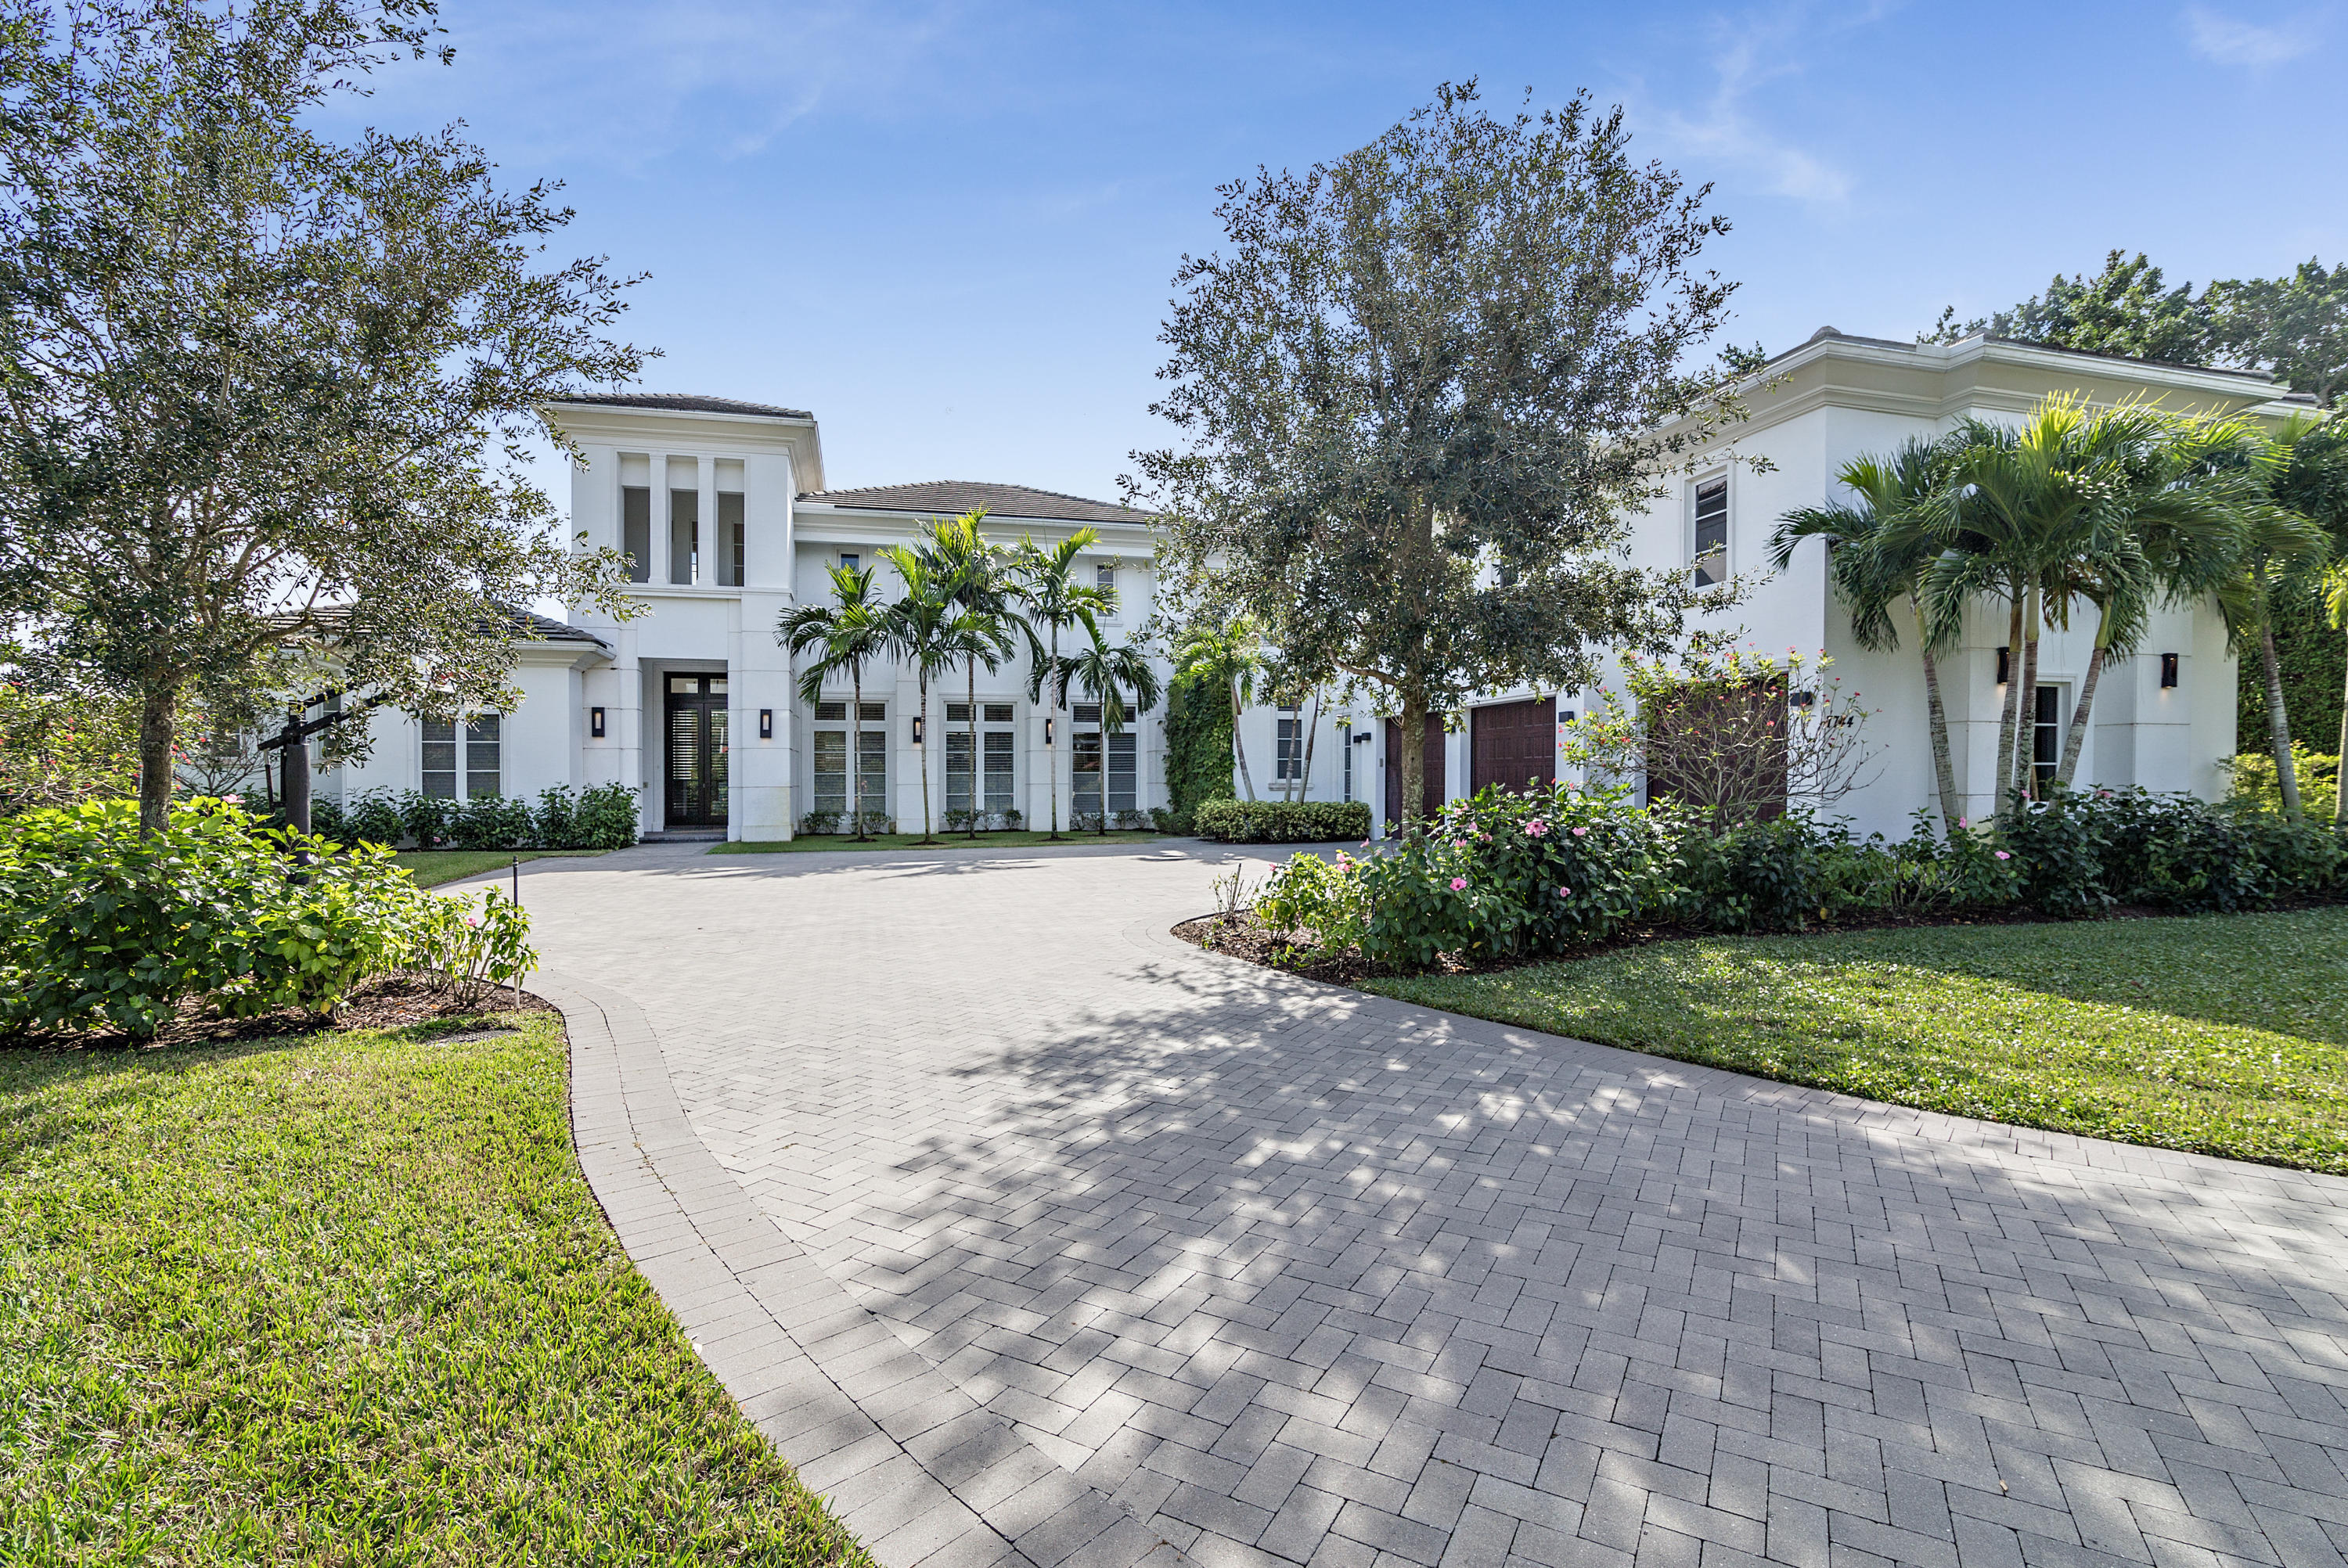 7744 Bold Lad Road, Palm Beach Gardens, Florida 33418, 5 Bedrooms Bedrooms, ,6.2 BathroomsBathrooms,Single Family,For Sale,Steeplechase,Bold Lad,1,RX-10498997